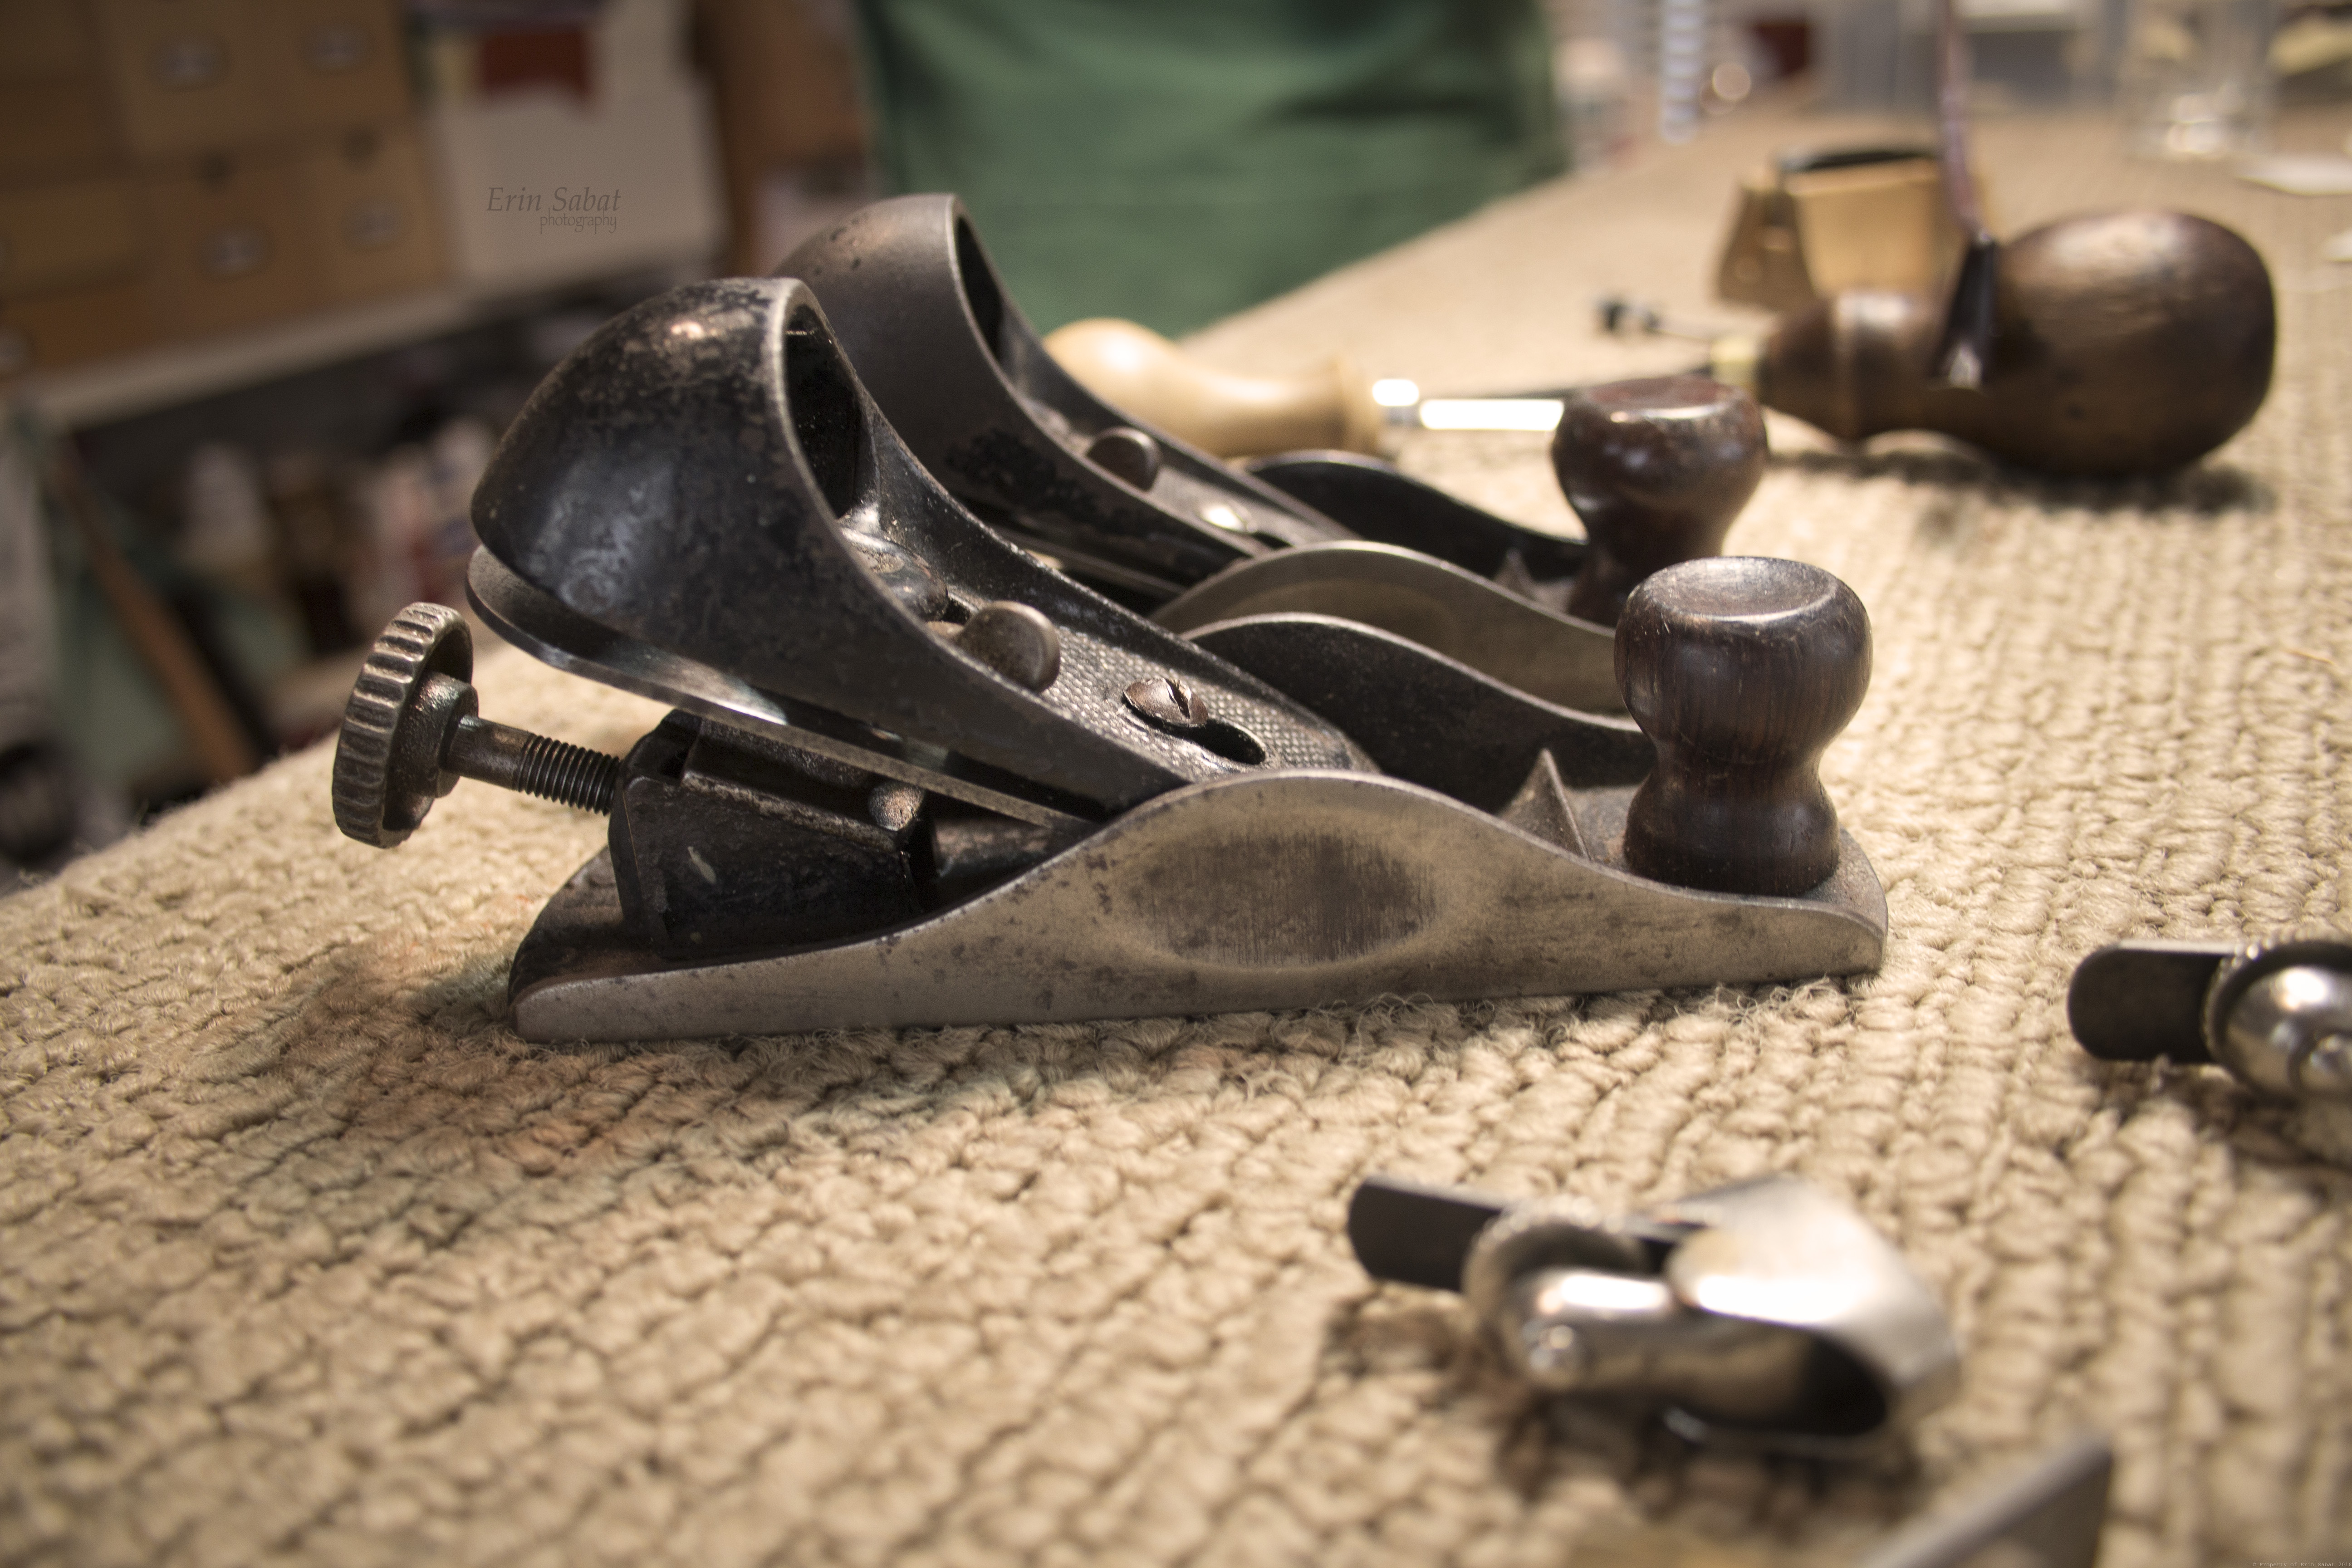 luthier tools Richard Gagliardi Violin Maker, Northern New Jersey